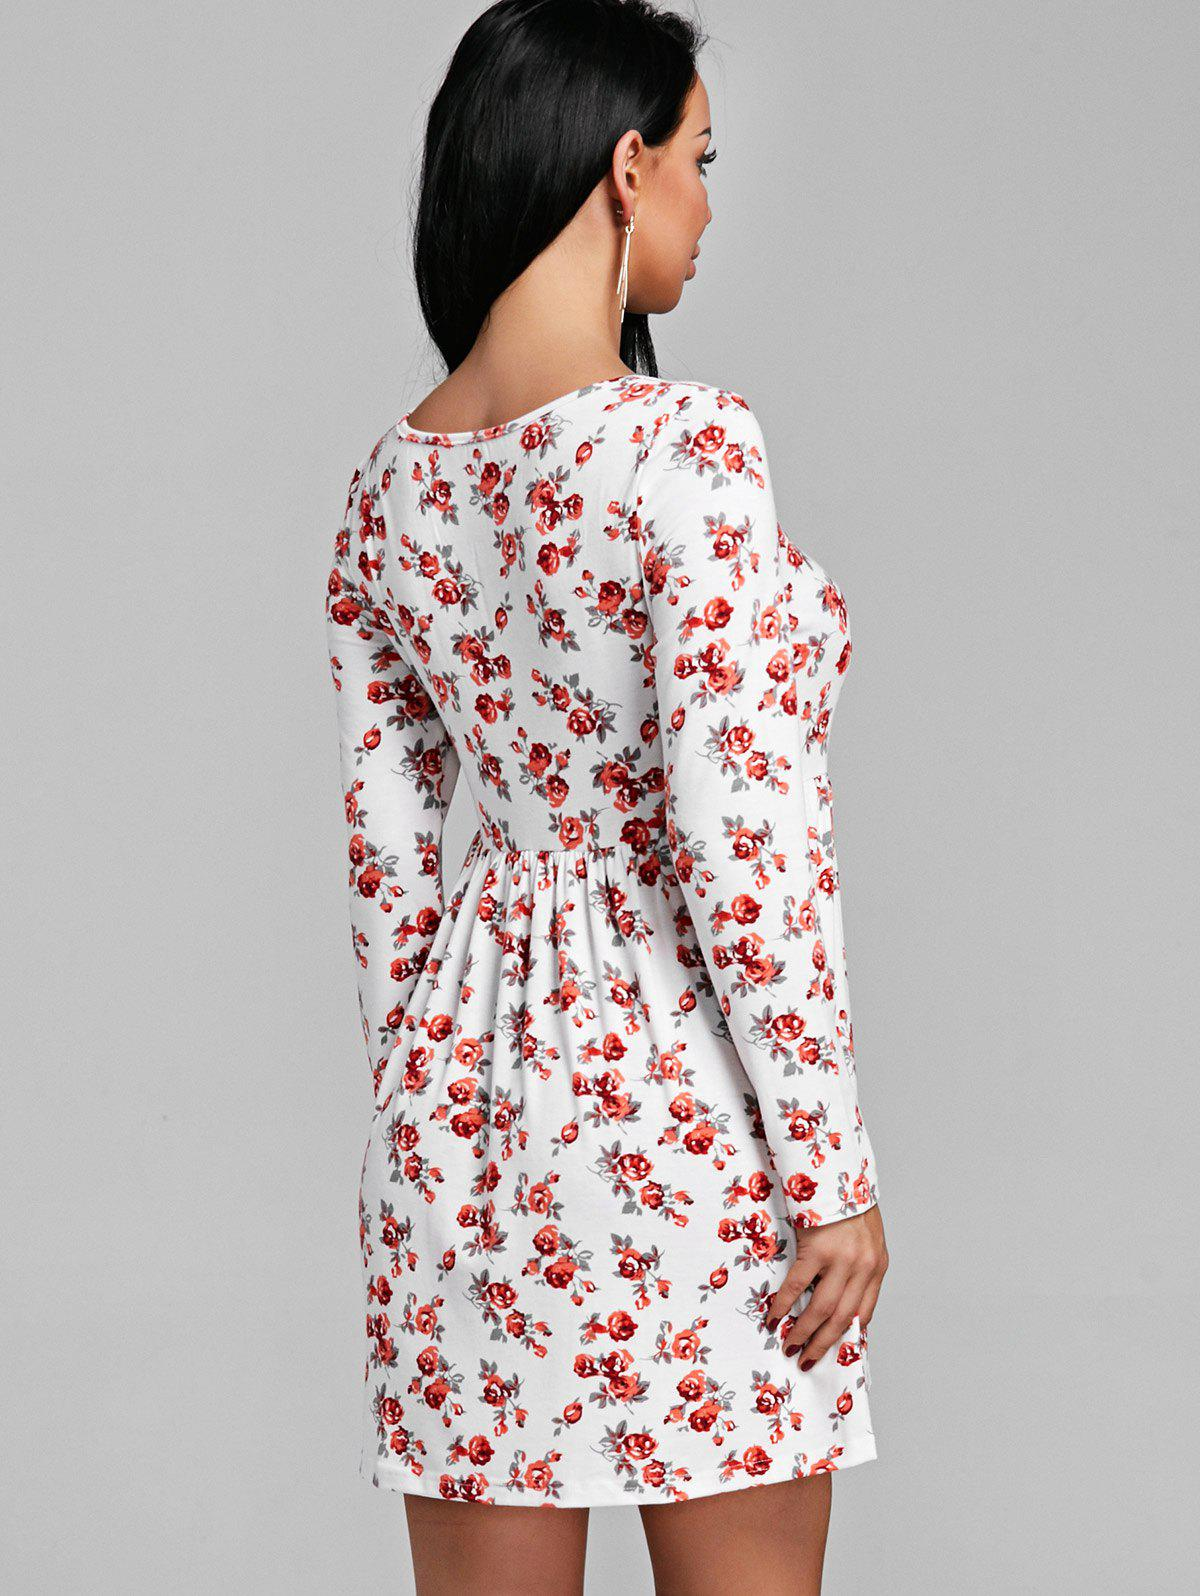 Tiny Floral Print Long Sleeve Dress - RED L